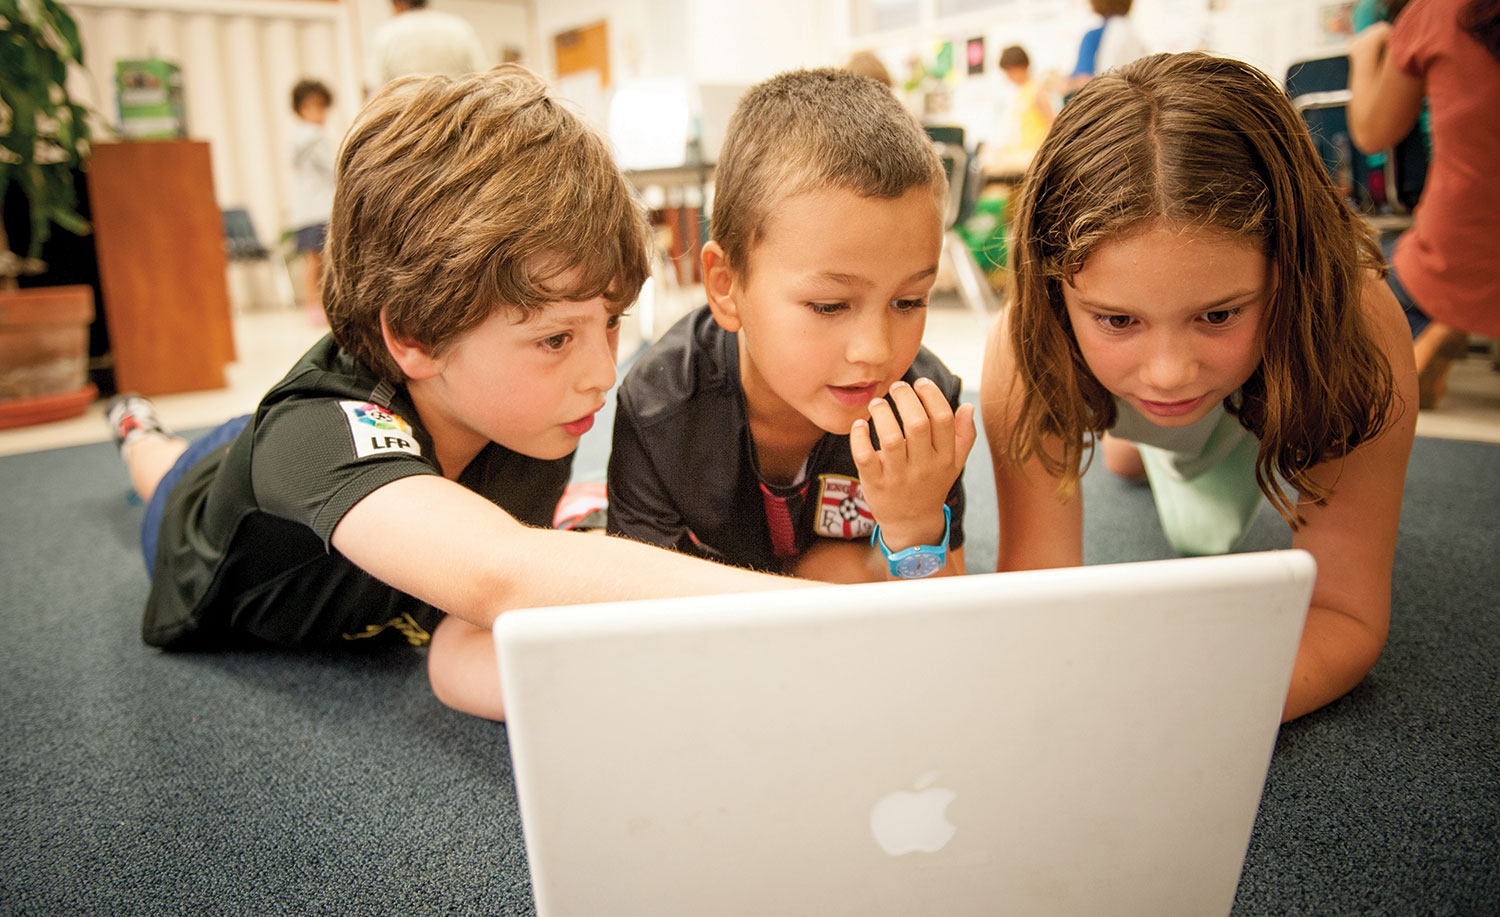 Kids on a laptop